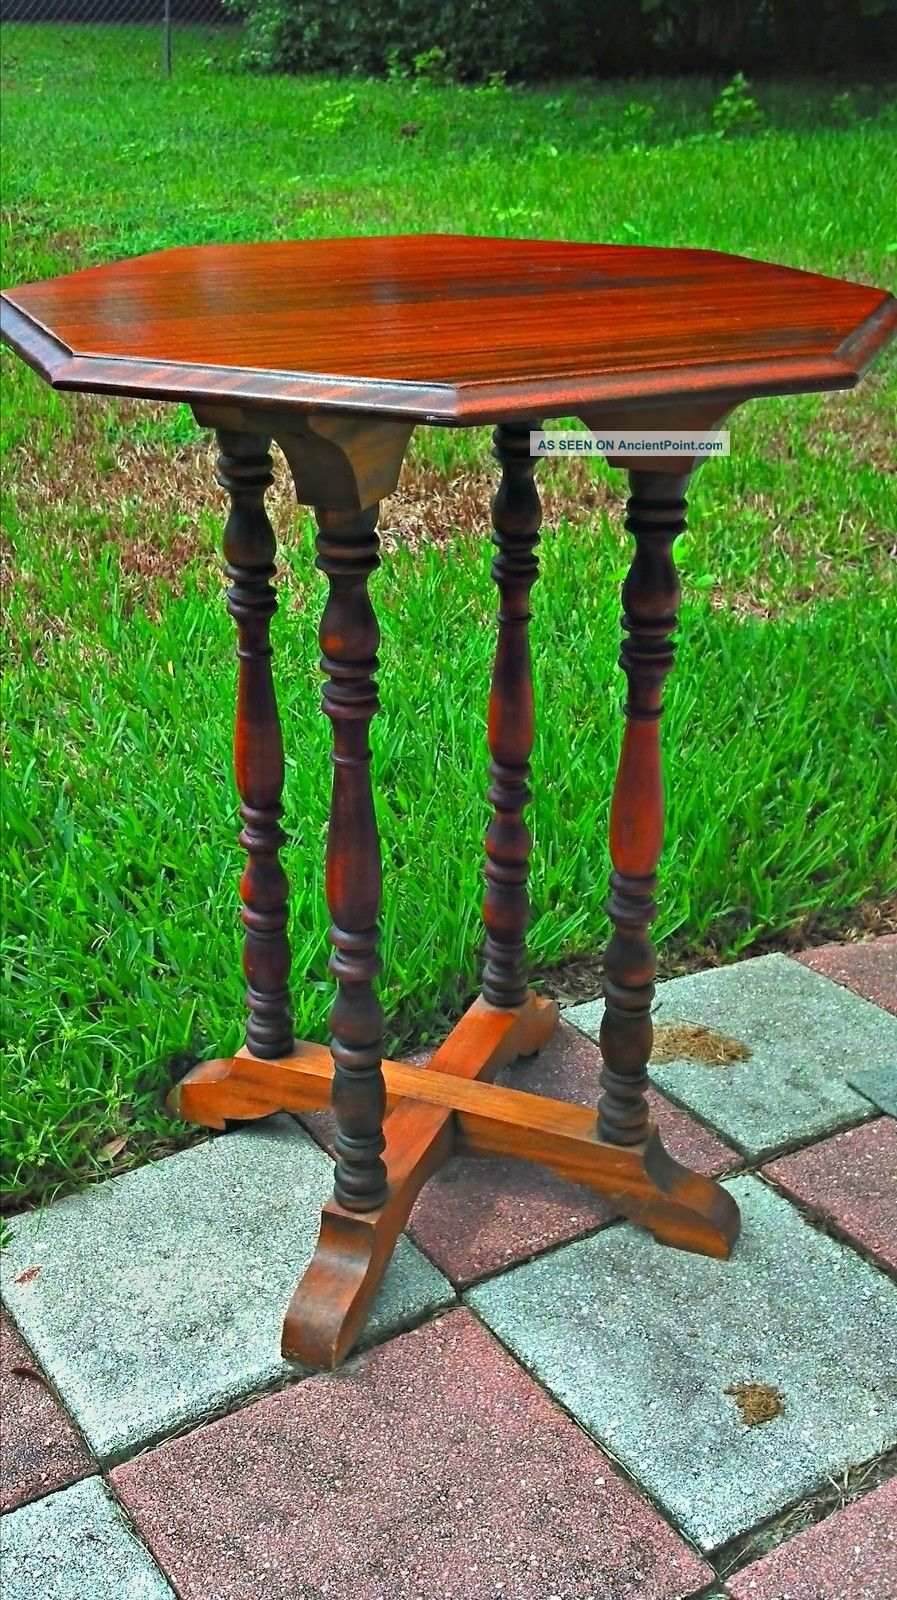 Vintage,  Antique,  Jb Van Scriver Center Table,  Side Table 1900-1950 photo